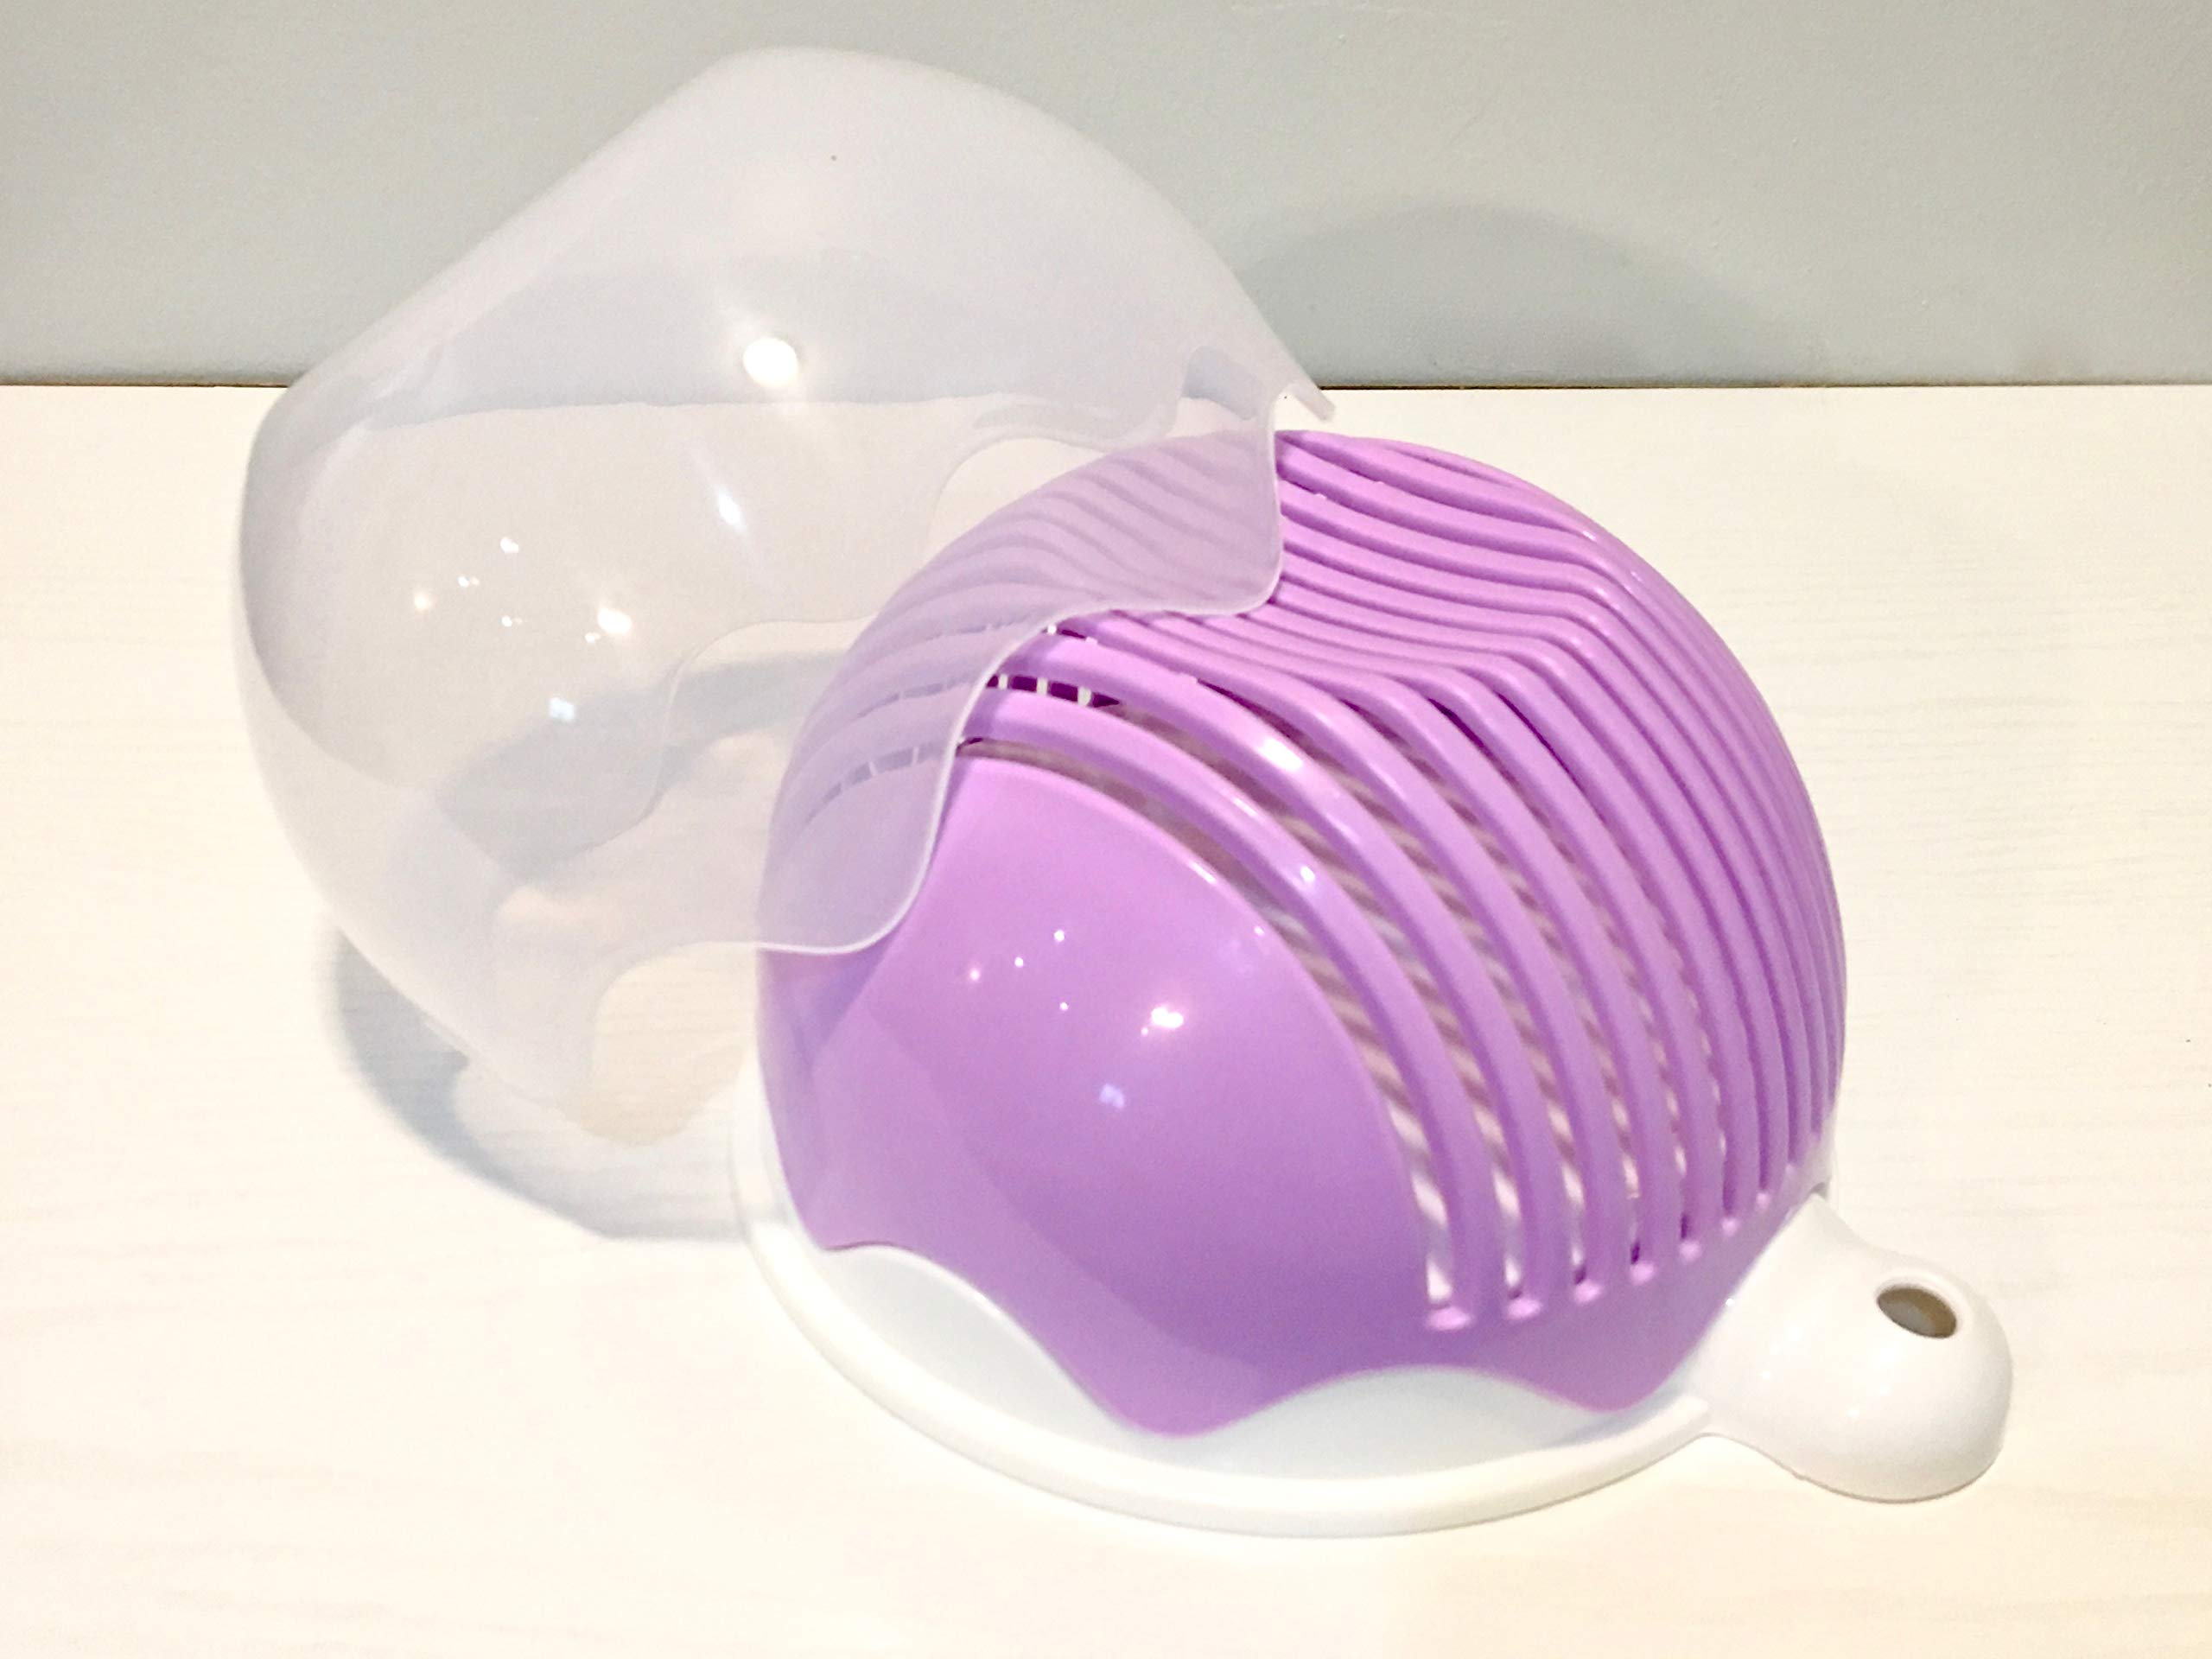 Quick Chop Salad Cutter Bowl - Fresh Salad Sliced in 60 seconds or less (Purple)